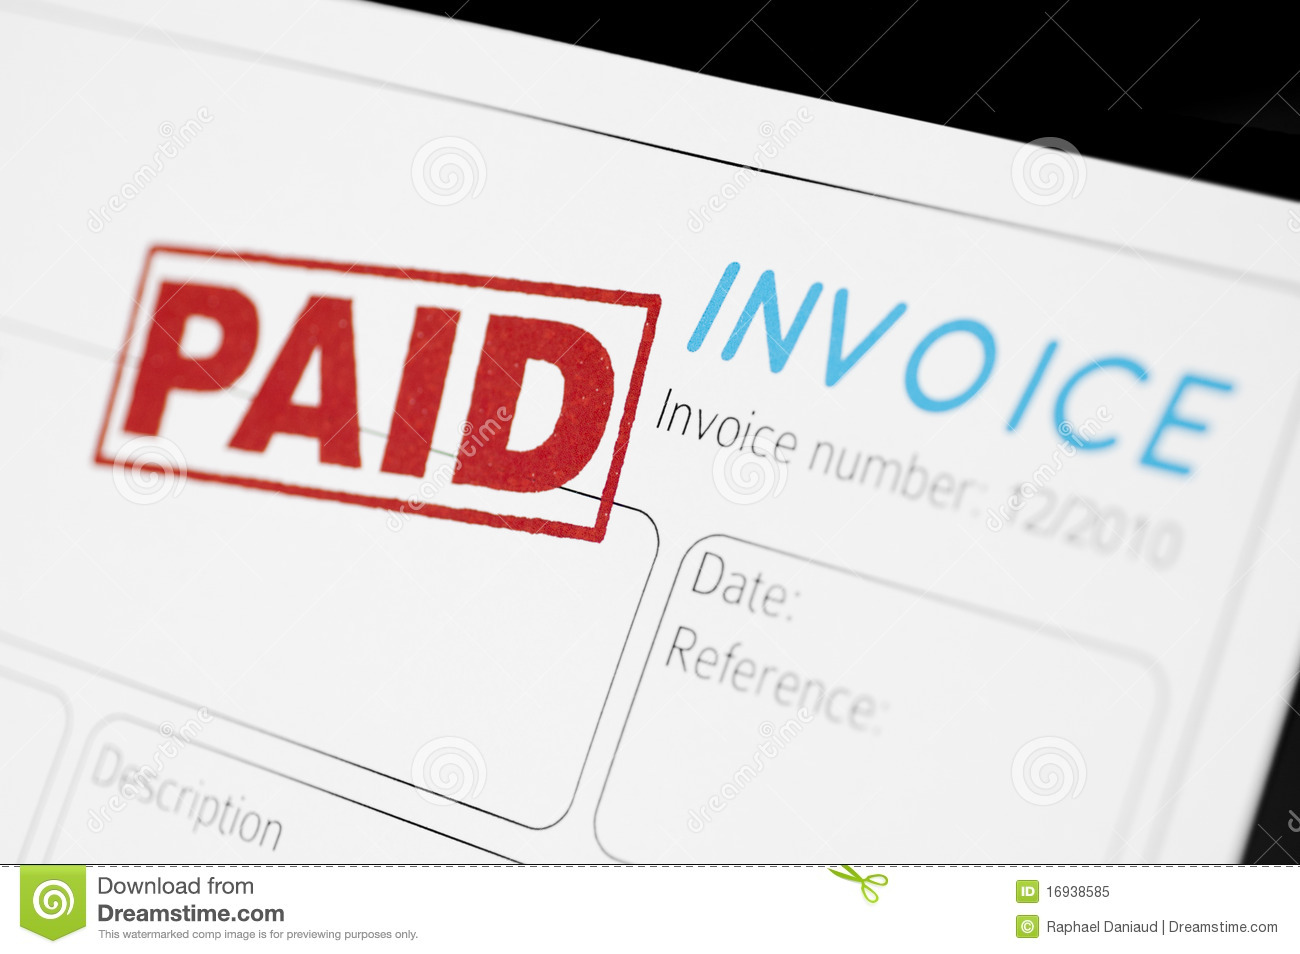 Paying Invoices Clip Art